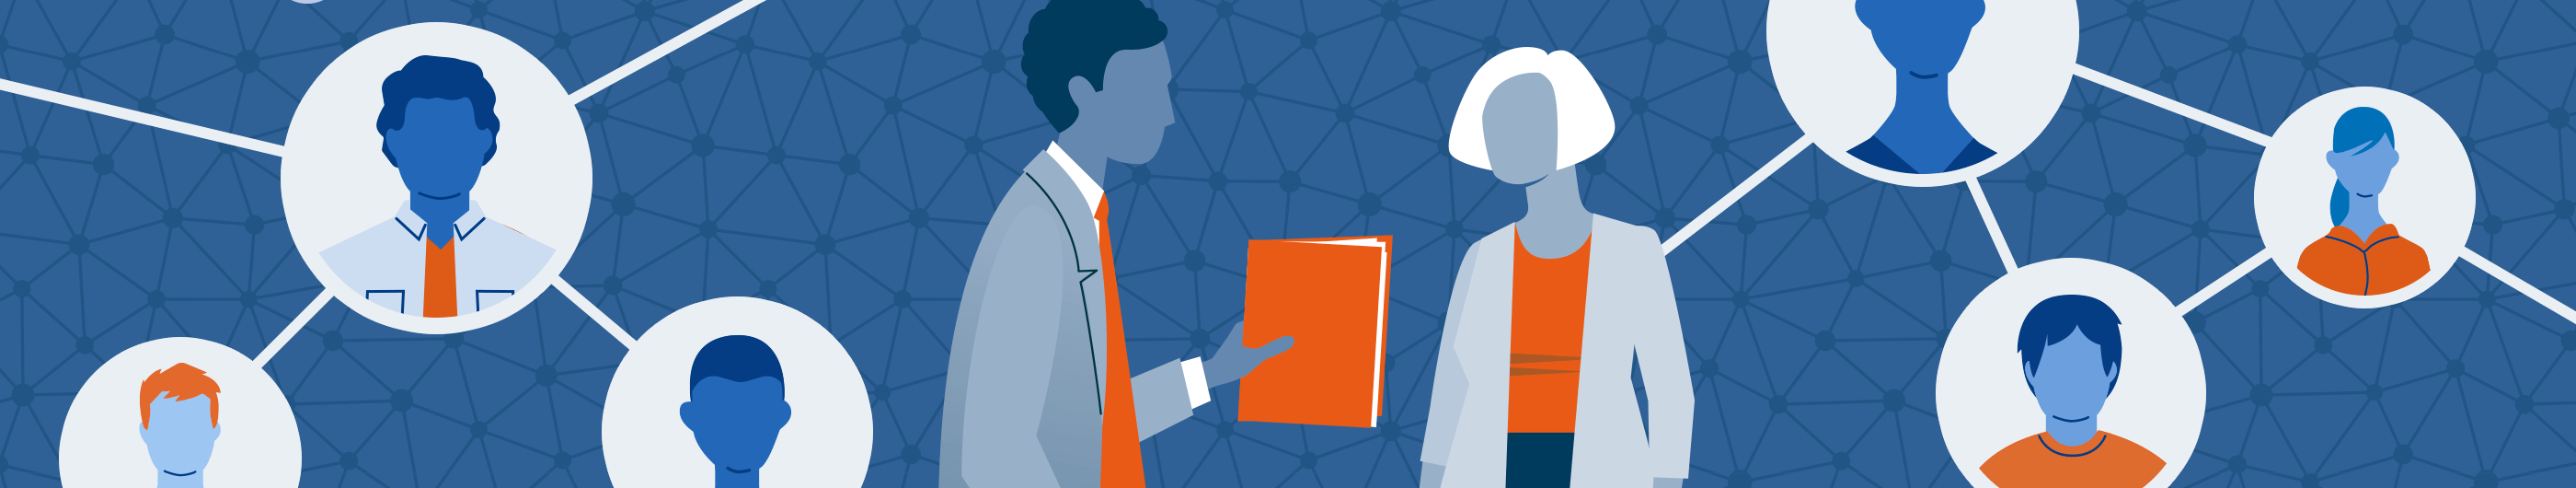 illustration of man holding book and talk to woman on blue background